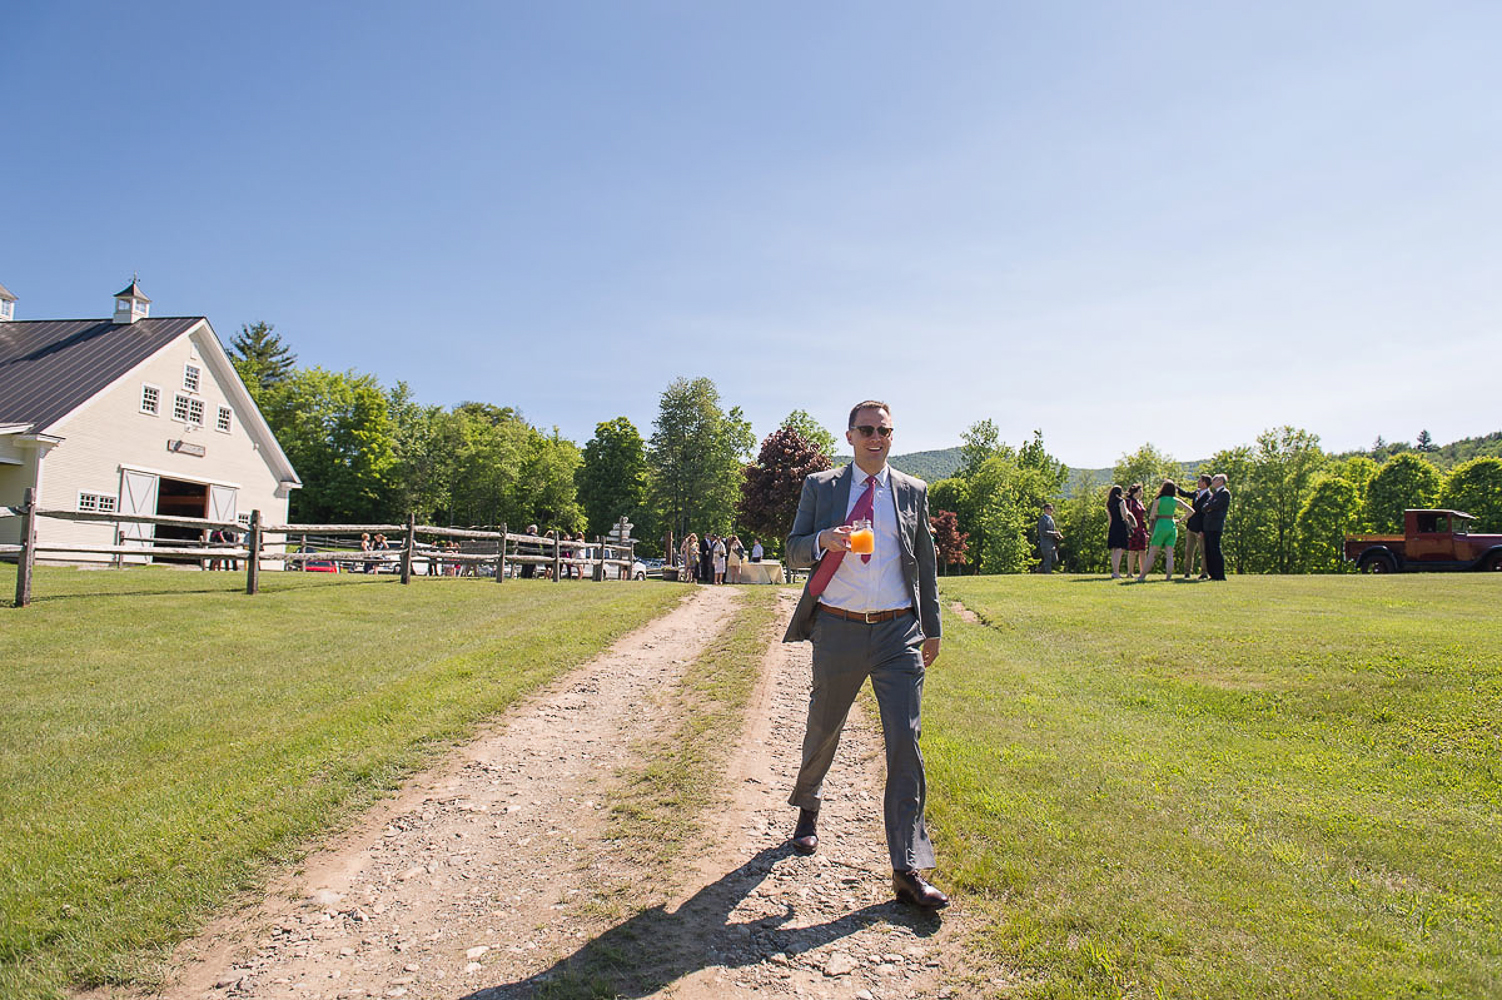 Riverside_Farm_Wedding_DariaBishop-6